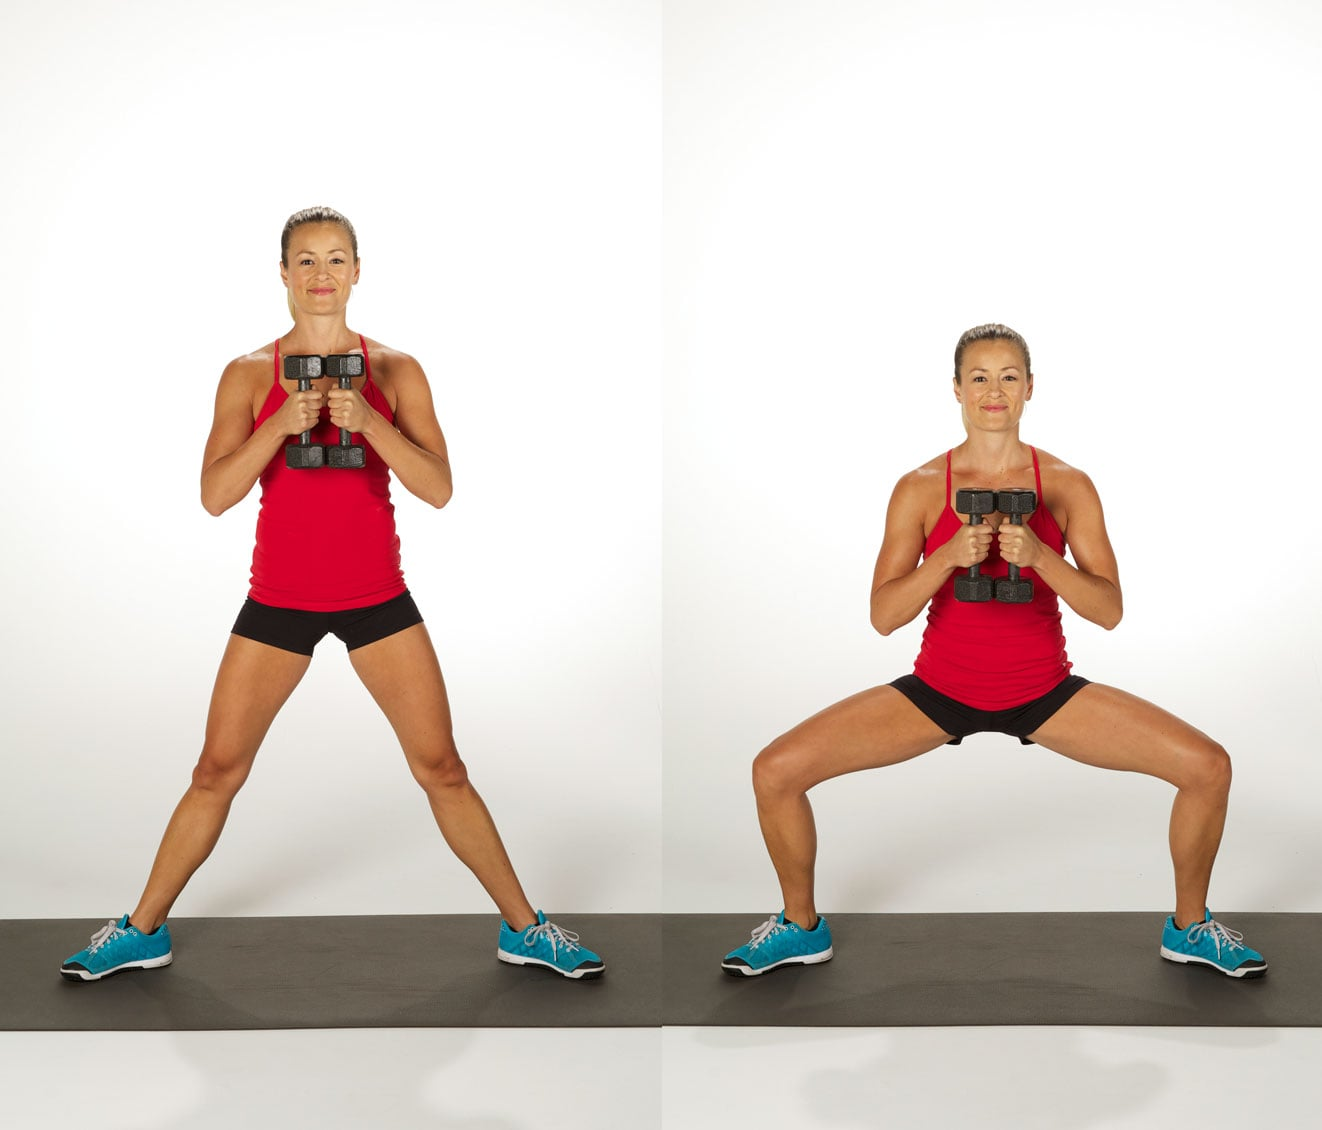 Dumbbell Sumo Squats | 11 Effective Exercises to Transform Your Flat Butt |  POPSUGAR Fitness Photo 3